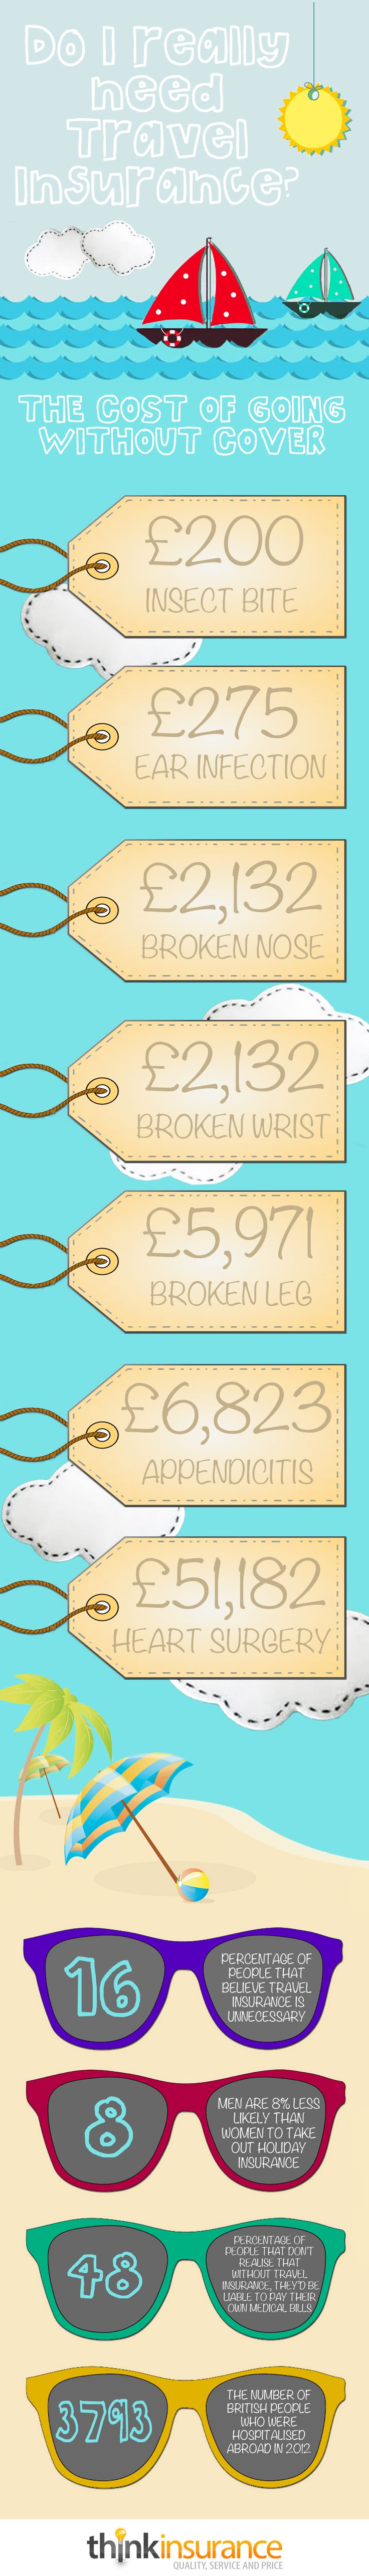 Travel / holiday insurance infographic http://www.think-ins.co.uk/news/travel-insurance/